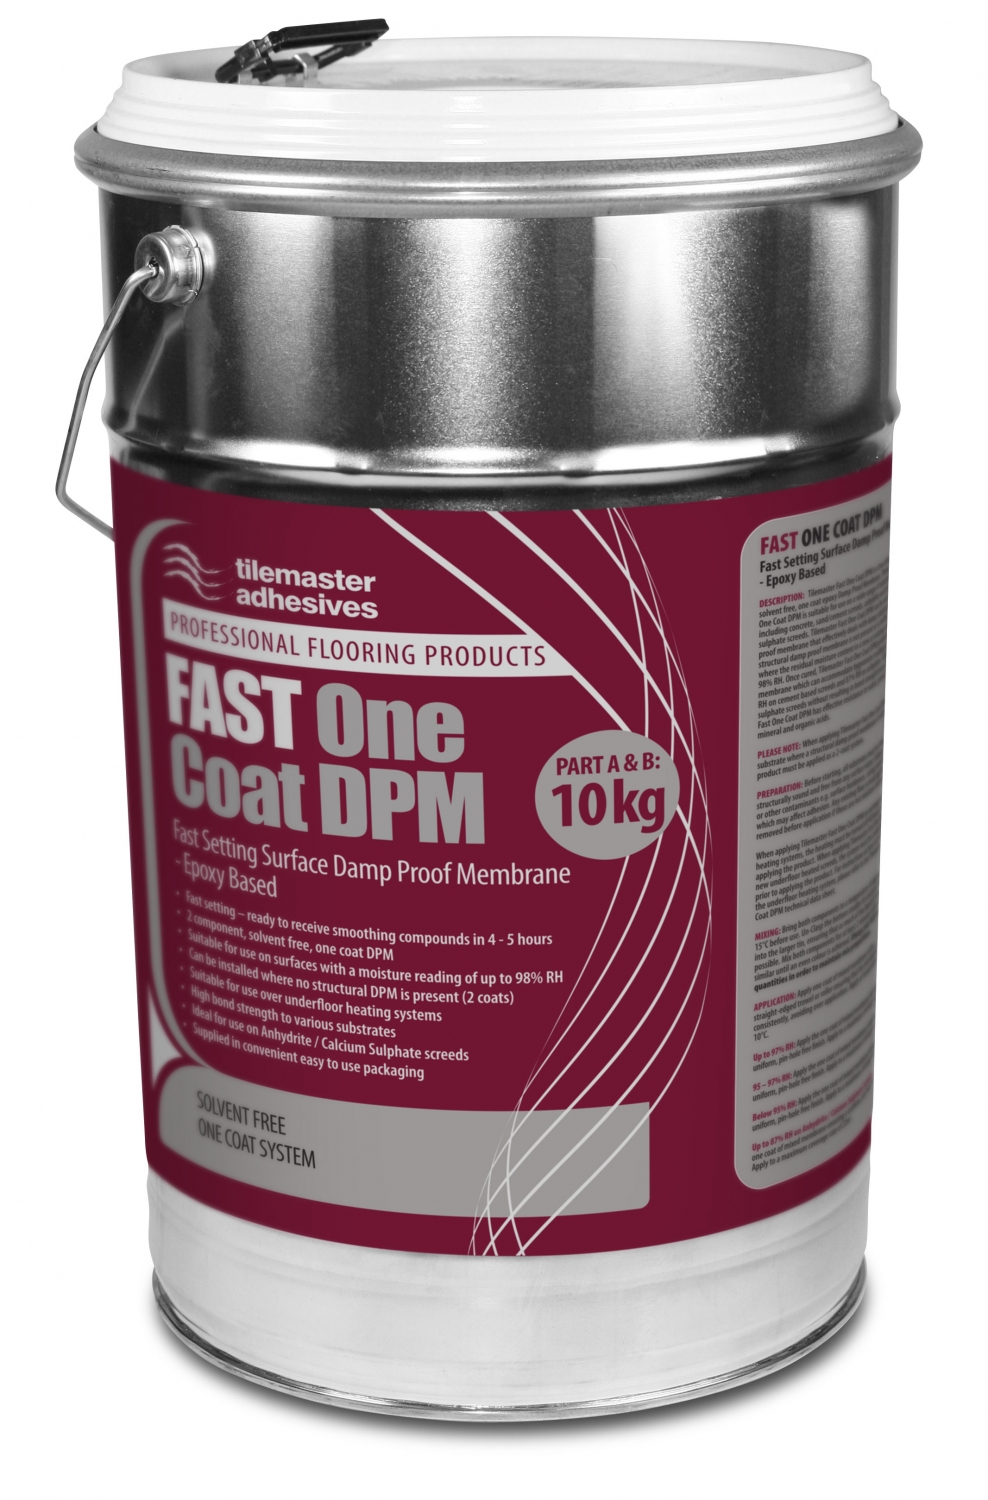 New Tilemaster FAST One Coat DPM joins 'game changing' range